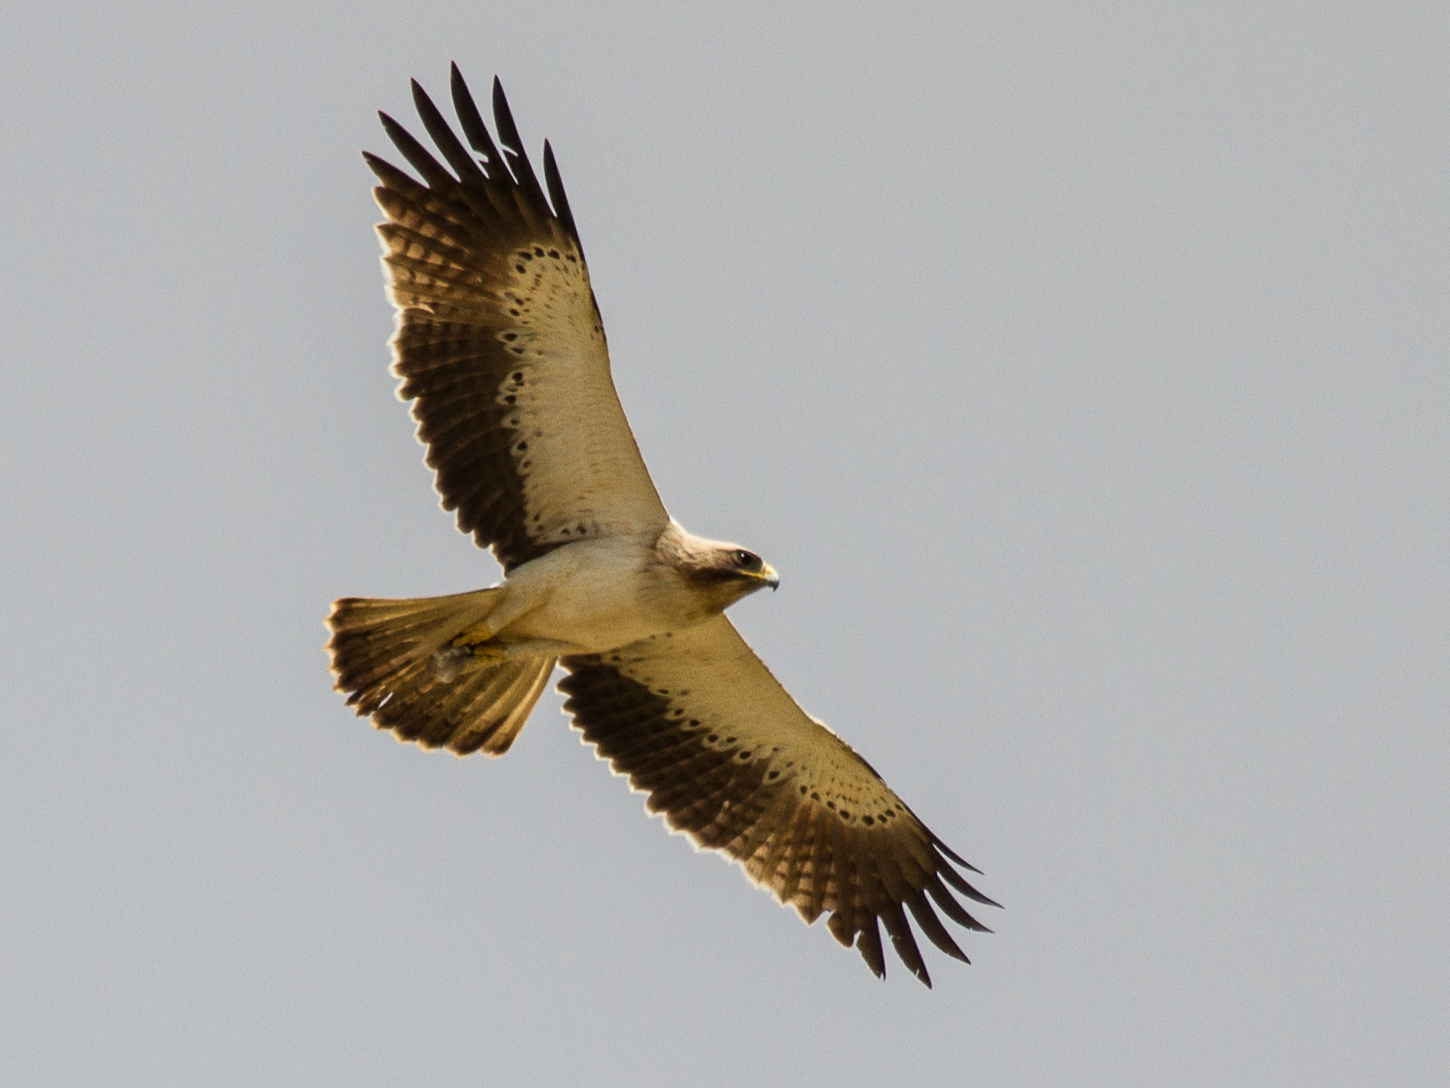 Booted Eagle In Flight, #Eagle